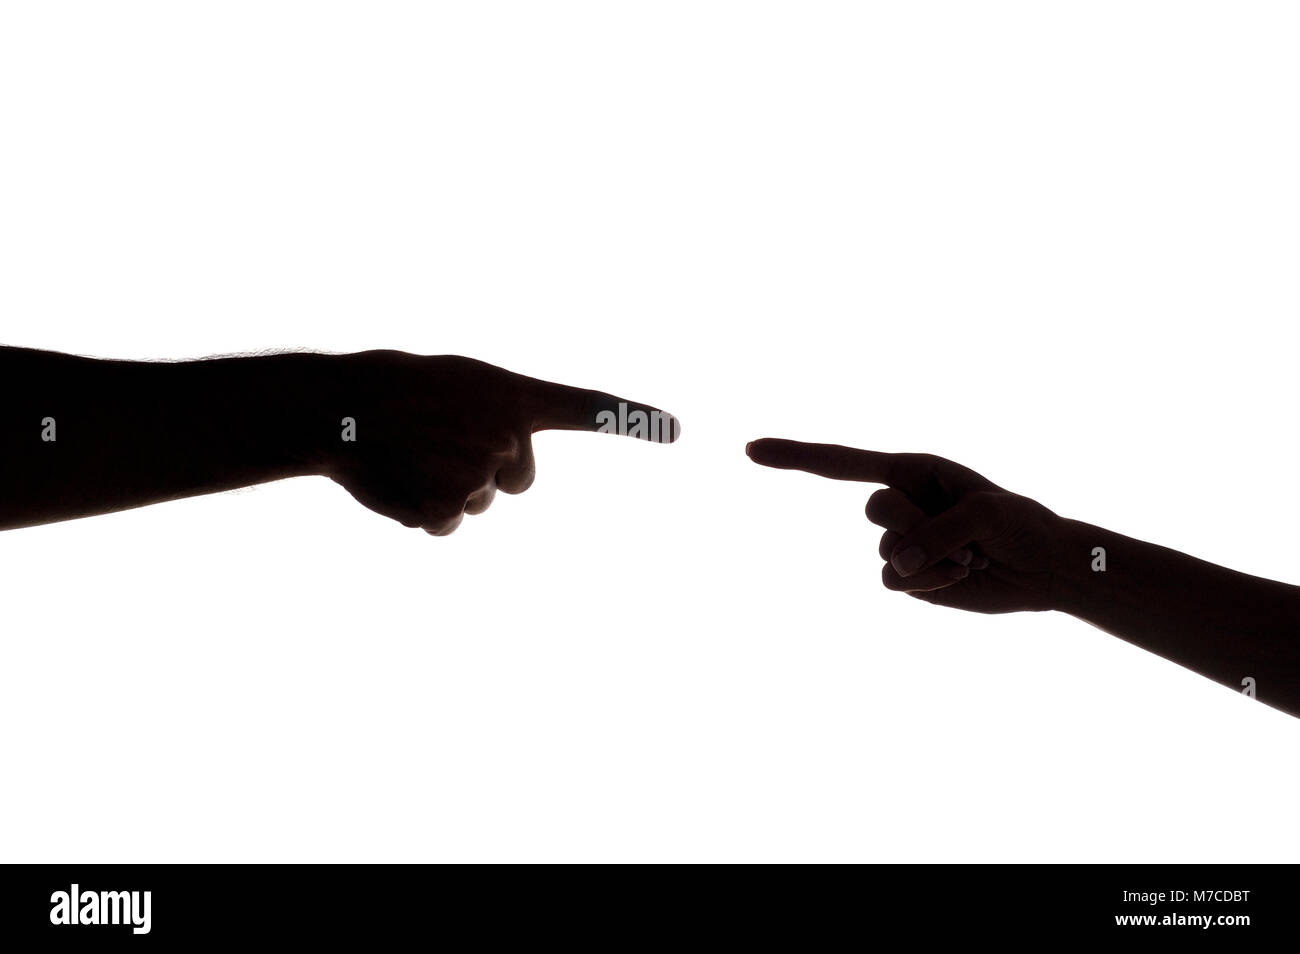 Close-up of a man's finger pointing to a woman's finger - Stock Image